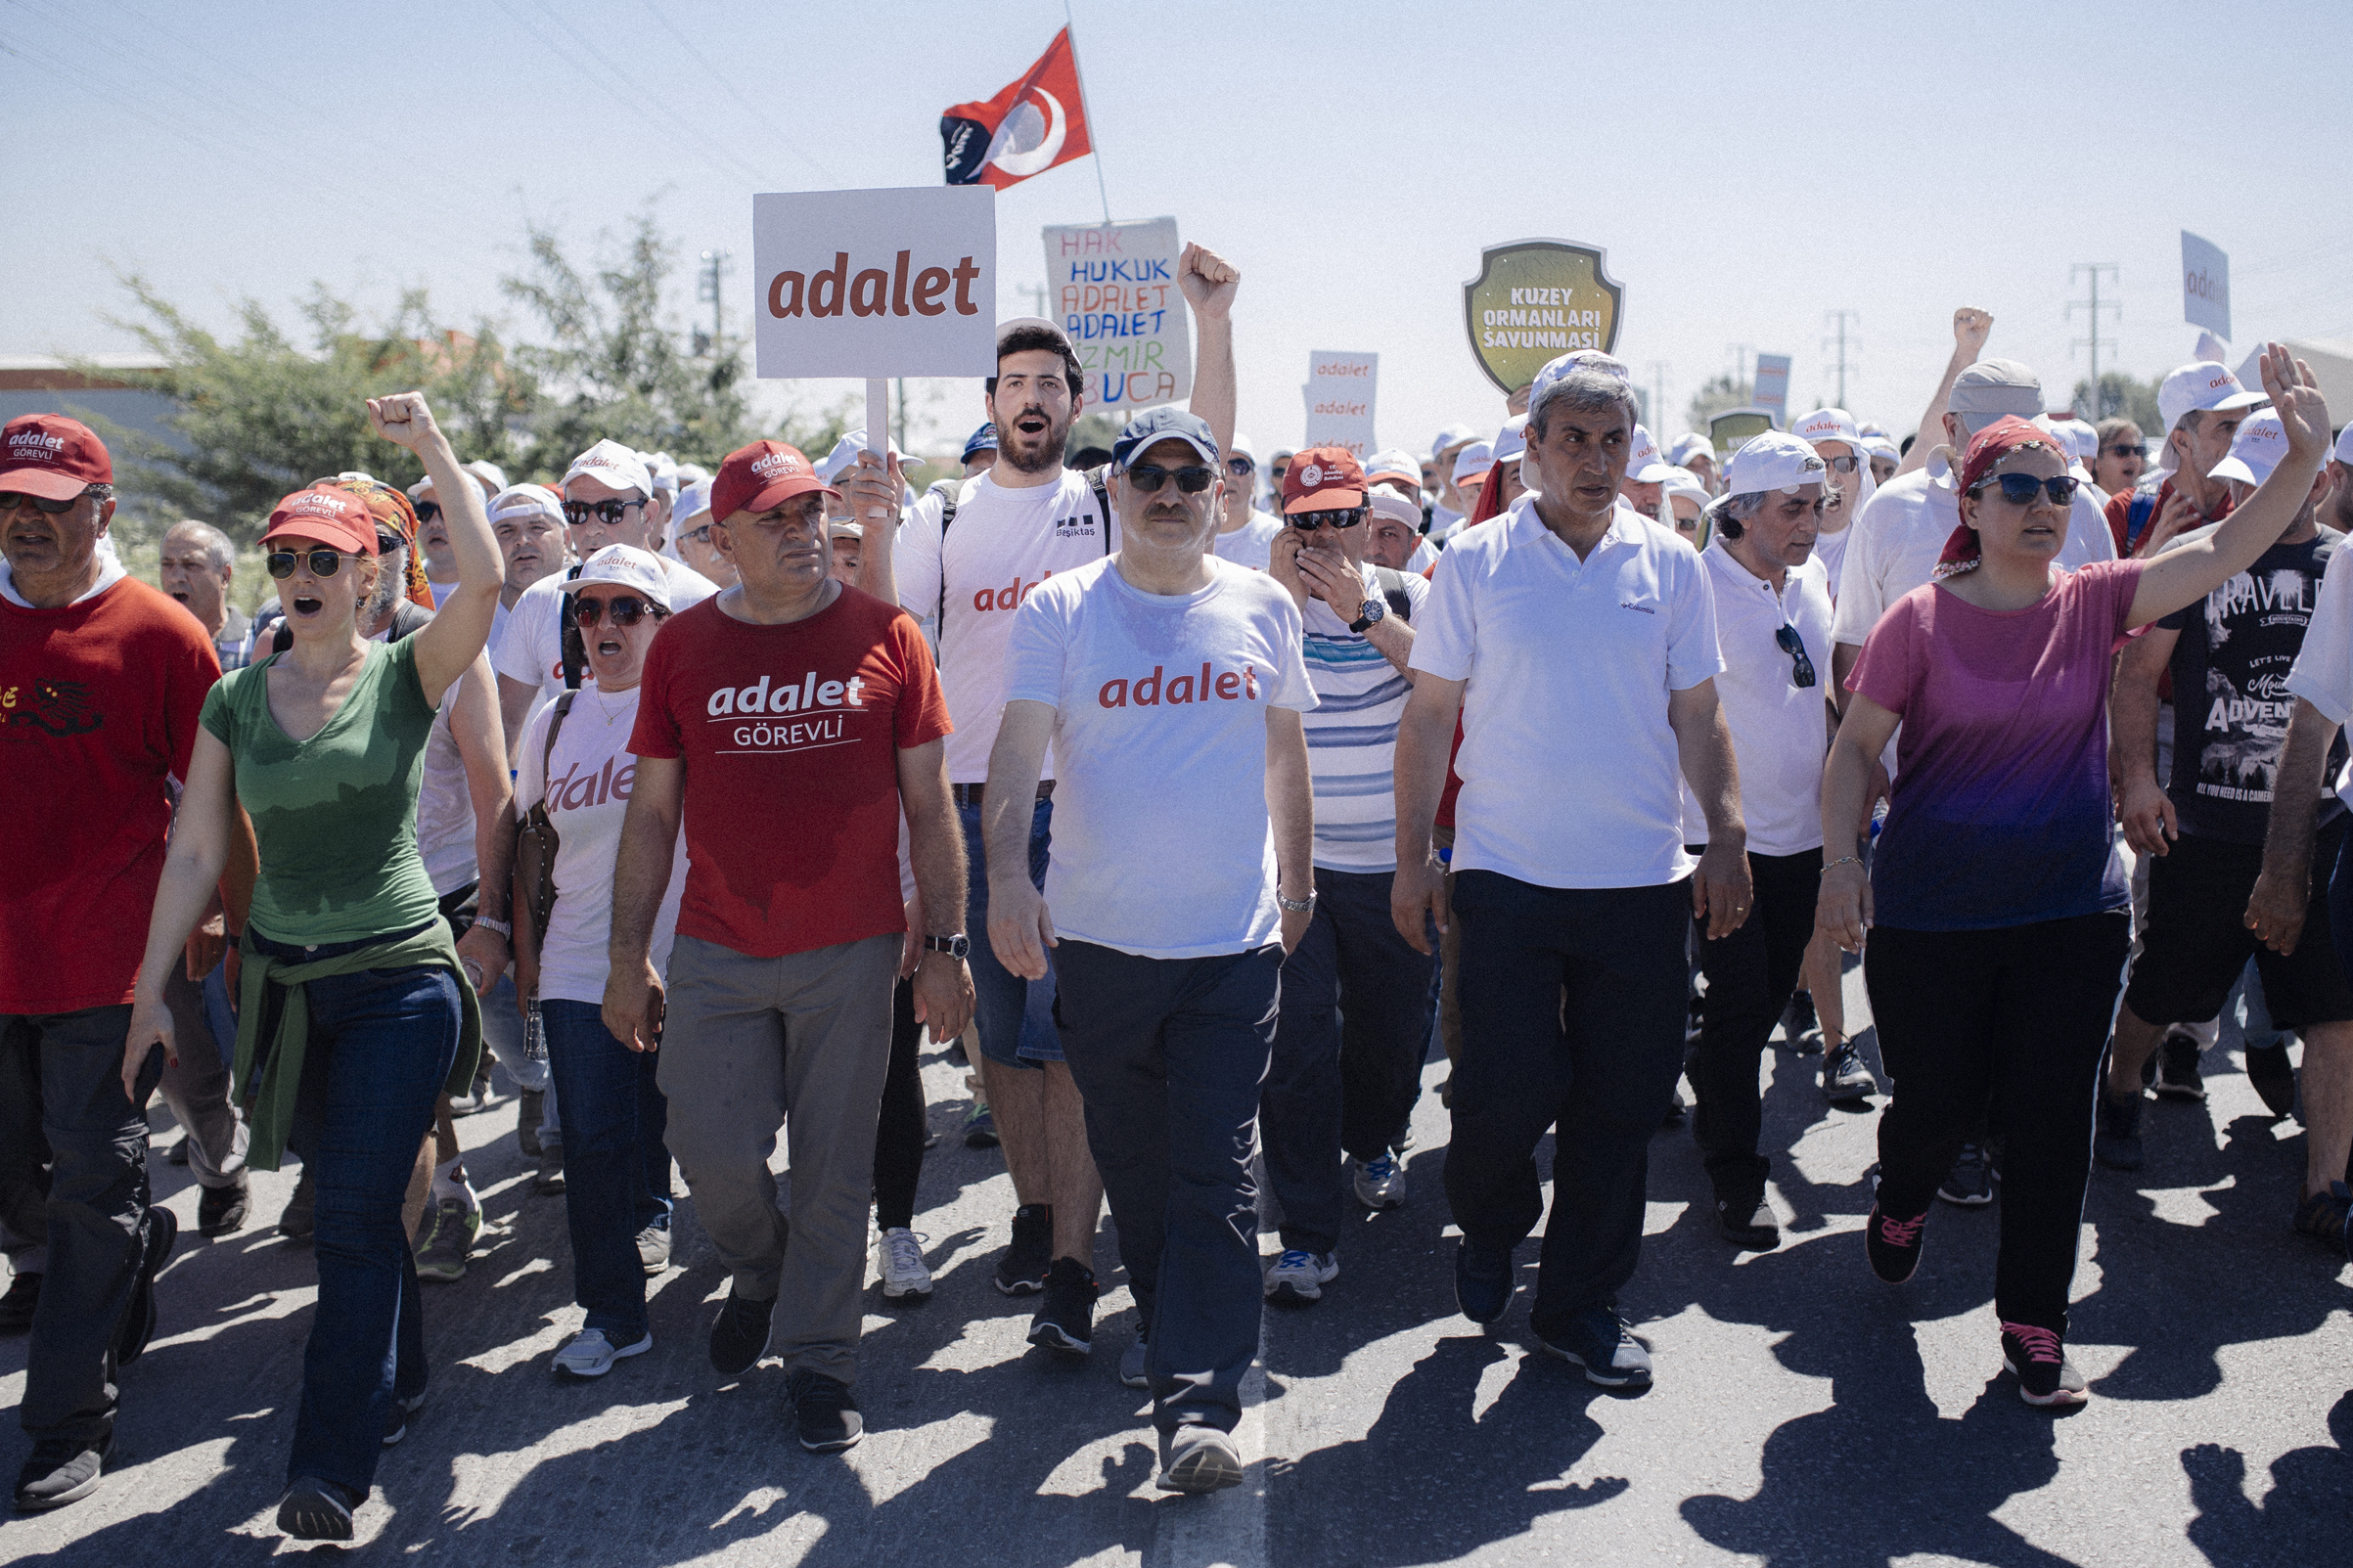 Thousands walk and shout slogans during the Justice March which began June 15 in Ankara, Turkey in protest of President Recep Tayyip Erdogan's government, July 1, 2017.